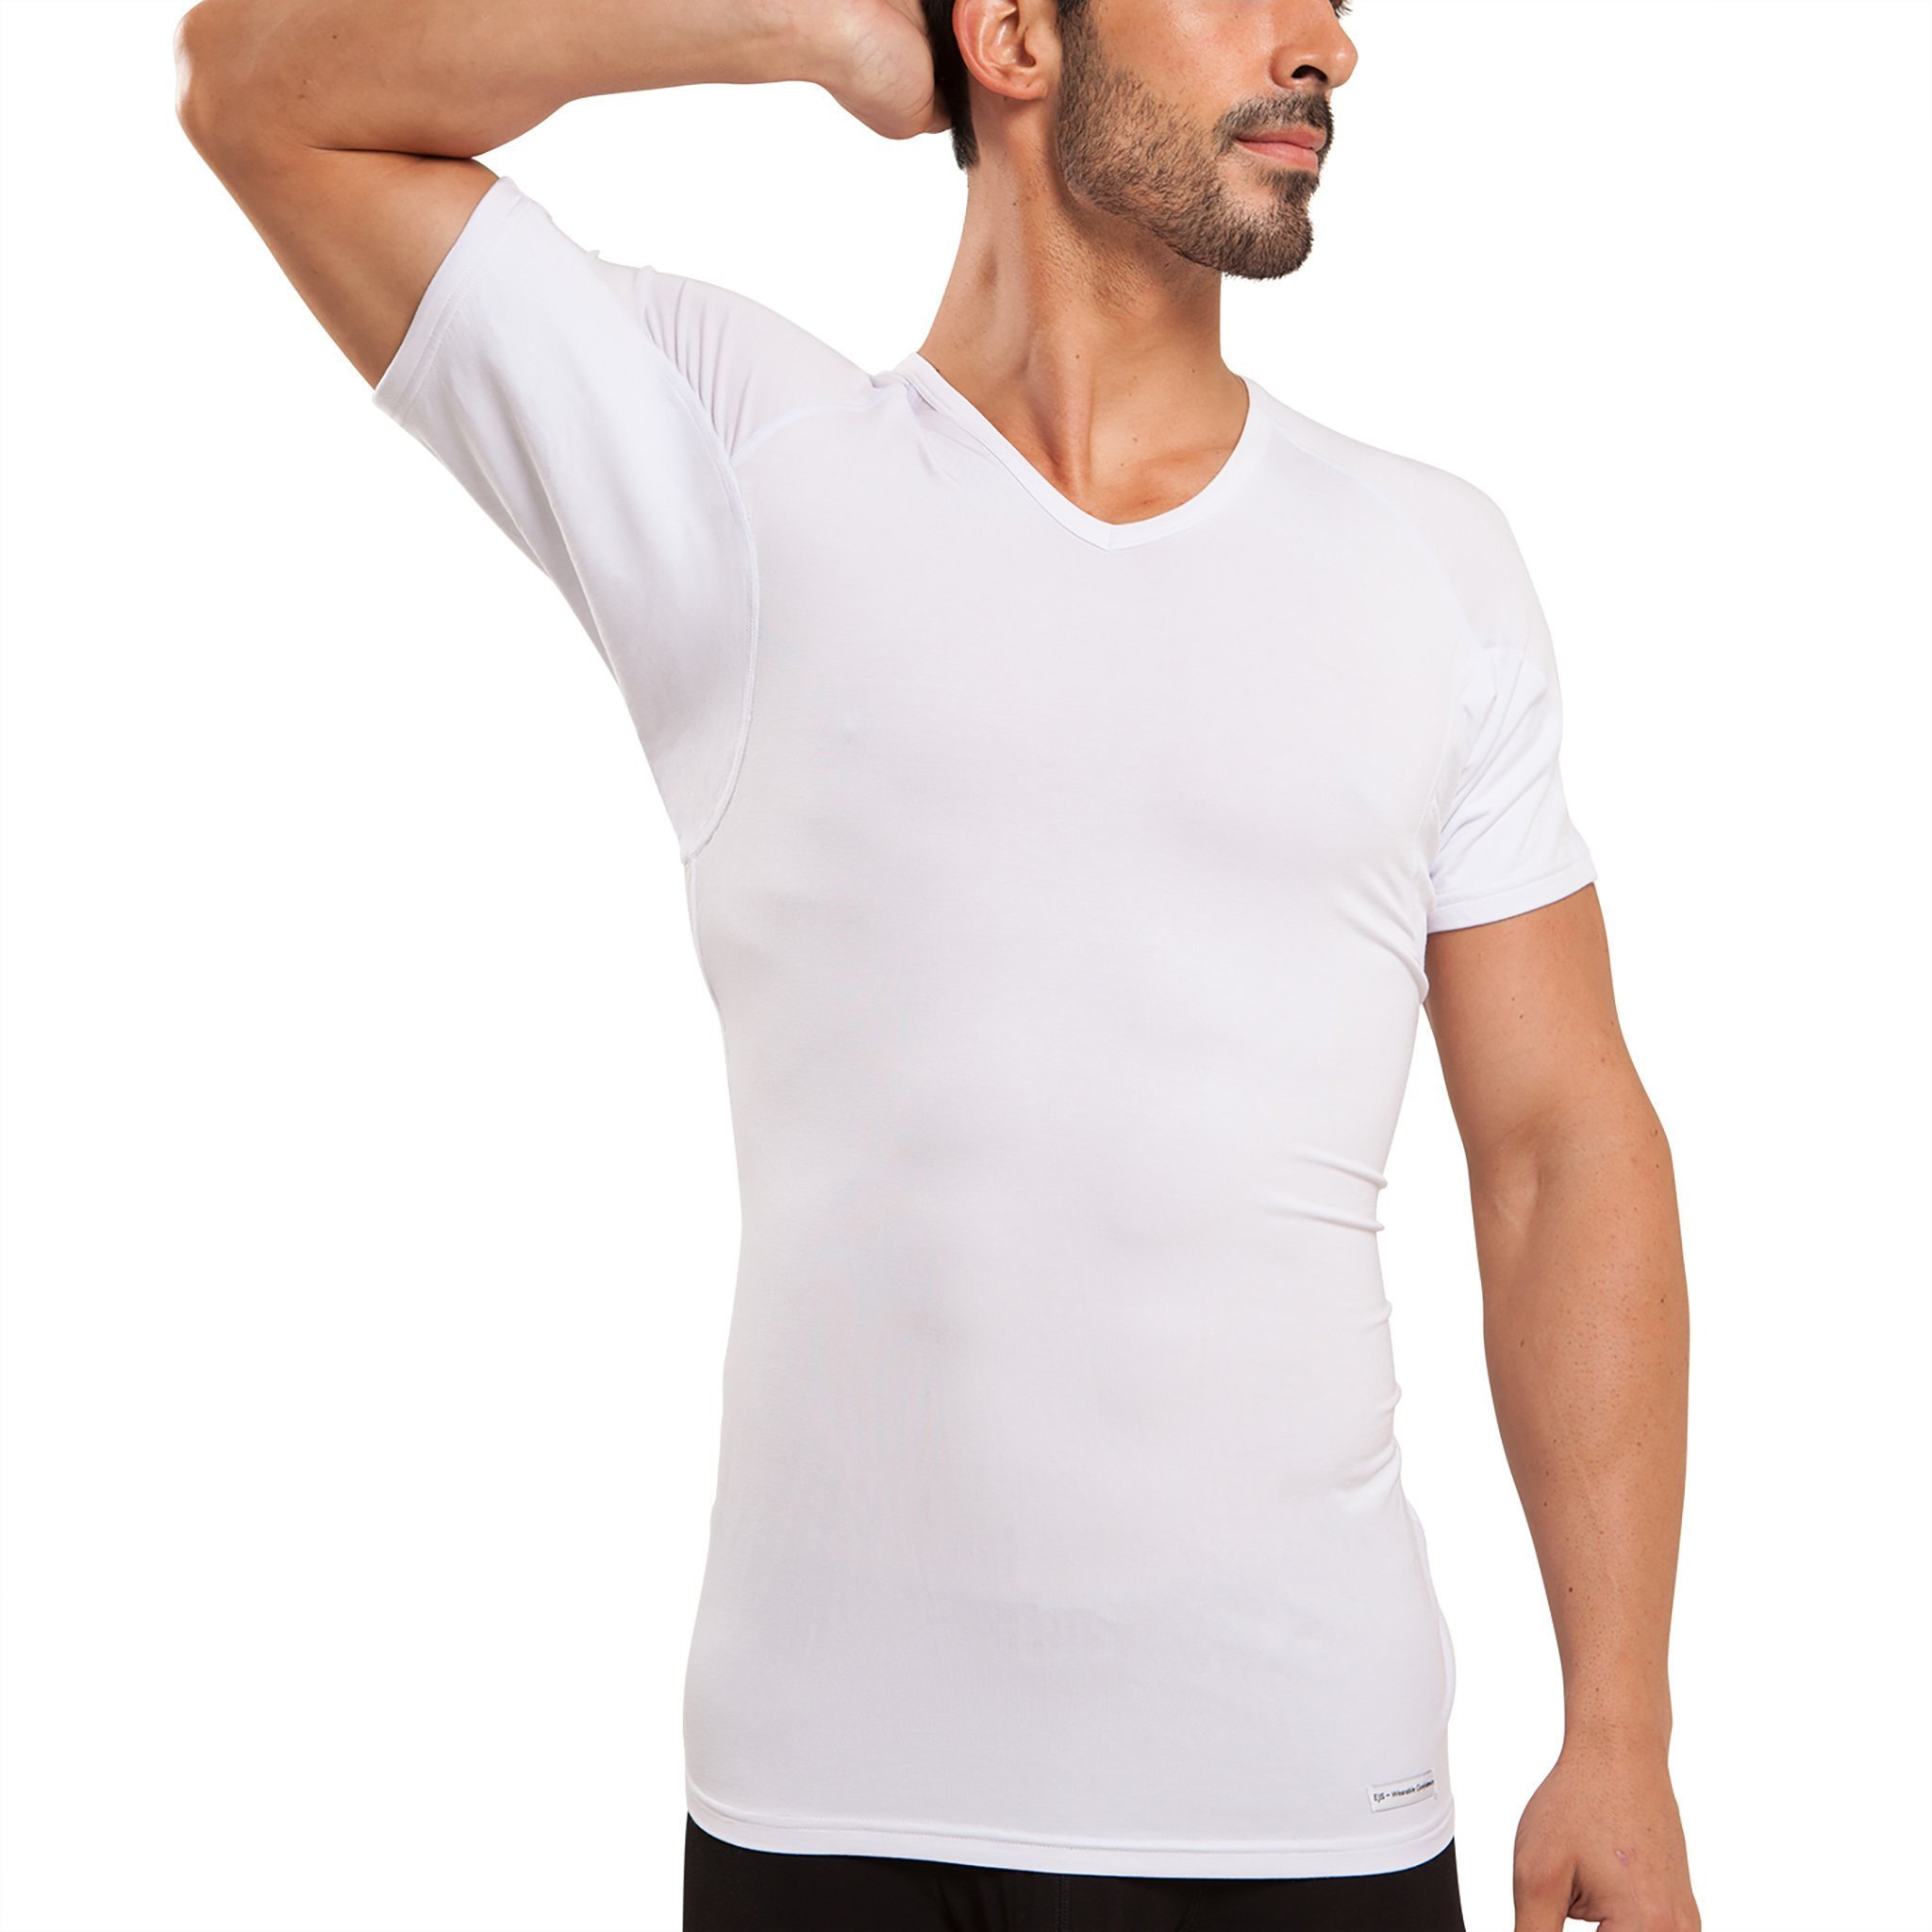 Ejis Sweatproof Undershirts for Men V Neck Micro Modal with Odor Fighting Silver (Large, White)